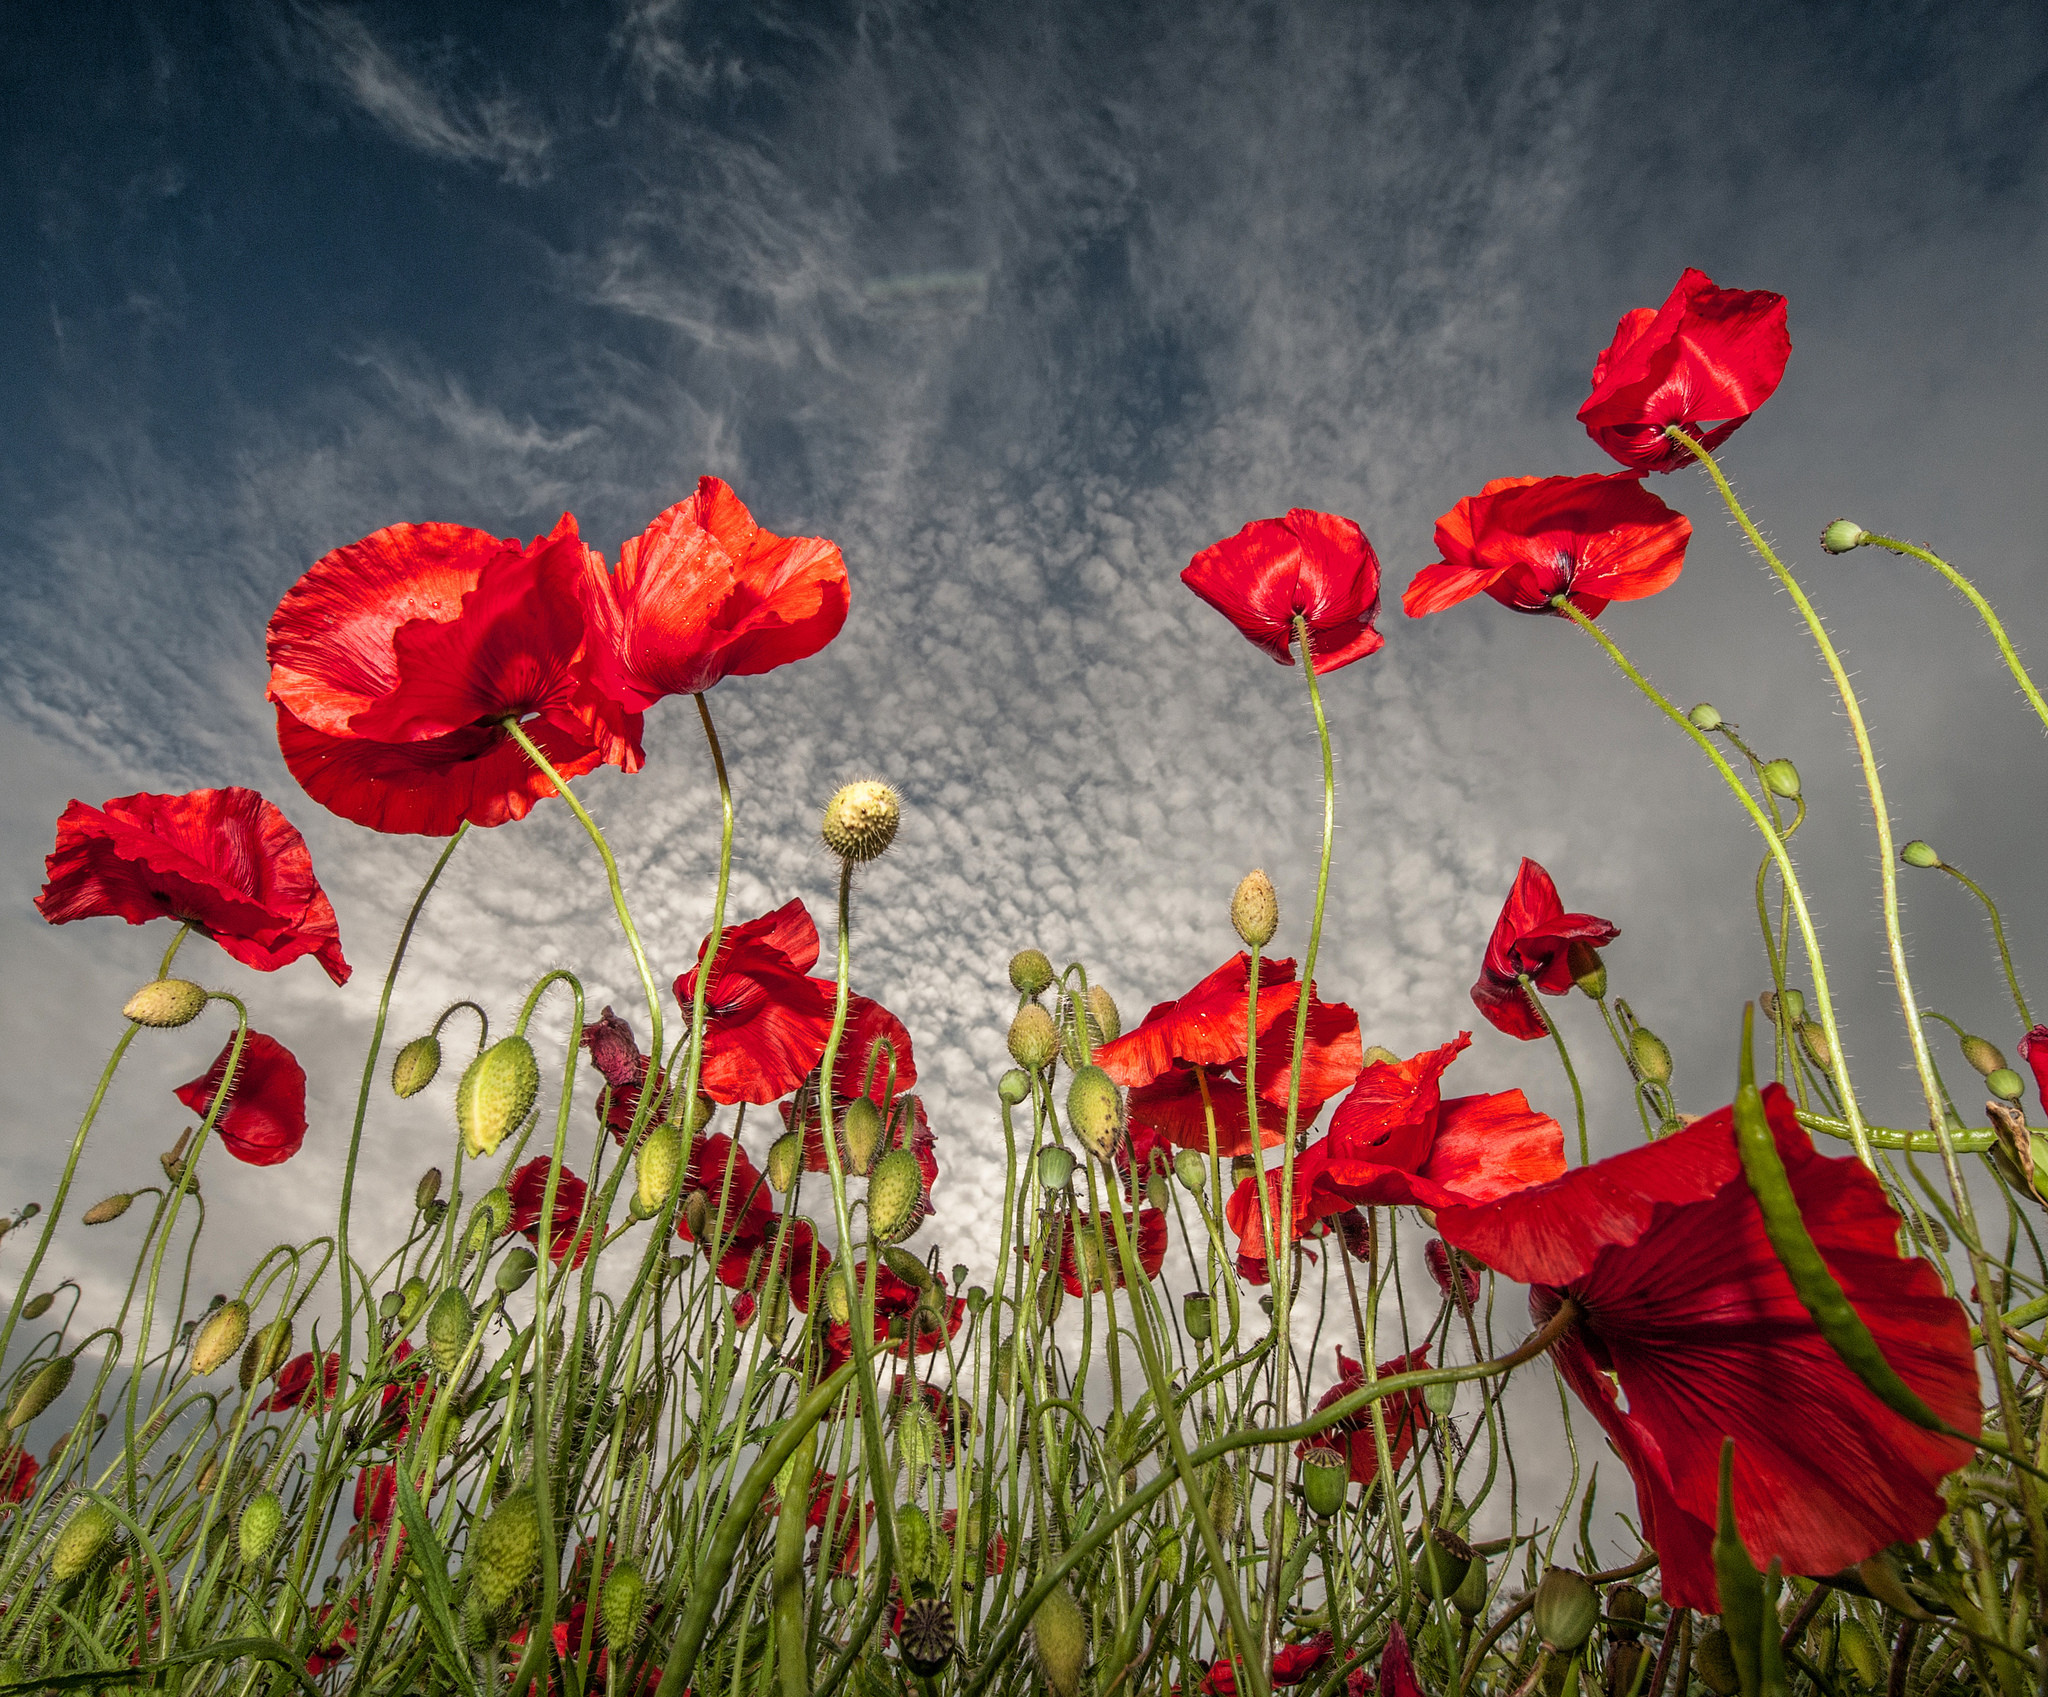 2048x1697 HD Wallpaper | Background Image ID:410020.  Earth Poppy